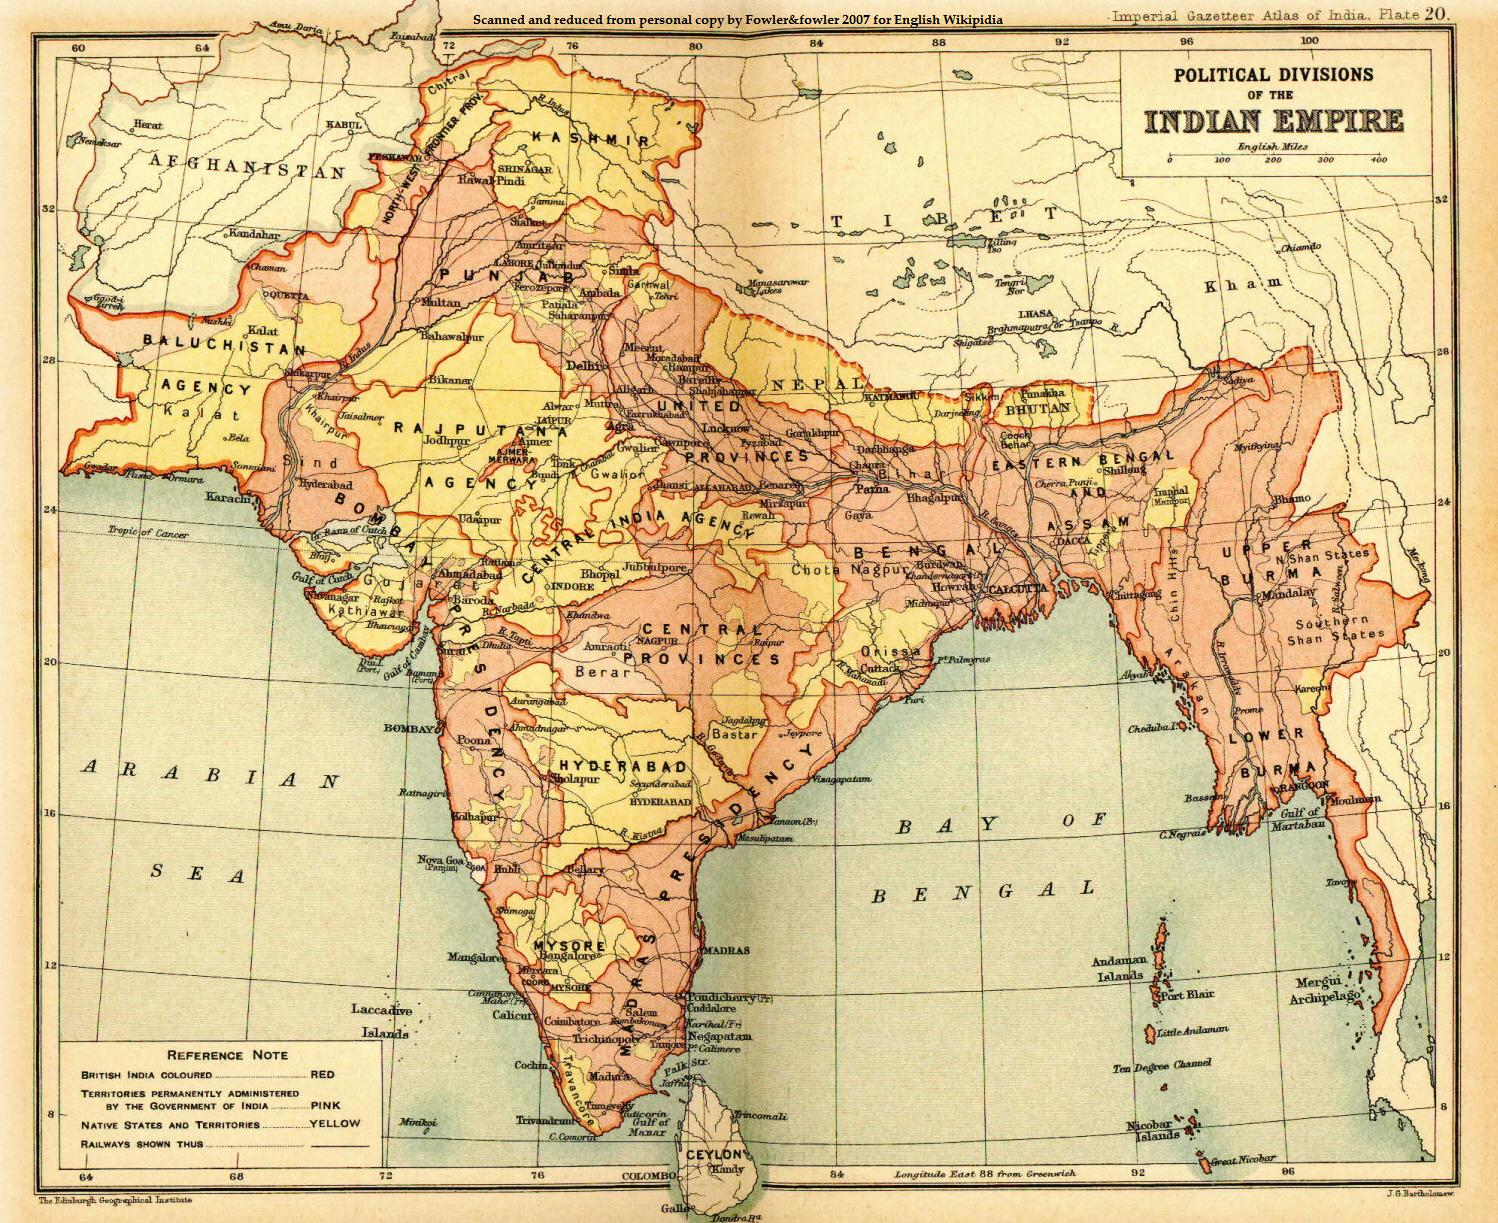 1760 india map, 1857, 3200BC india map, Ancient indian maps, ancient